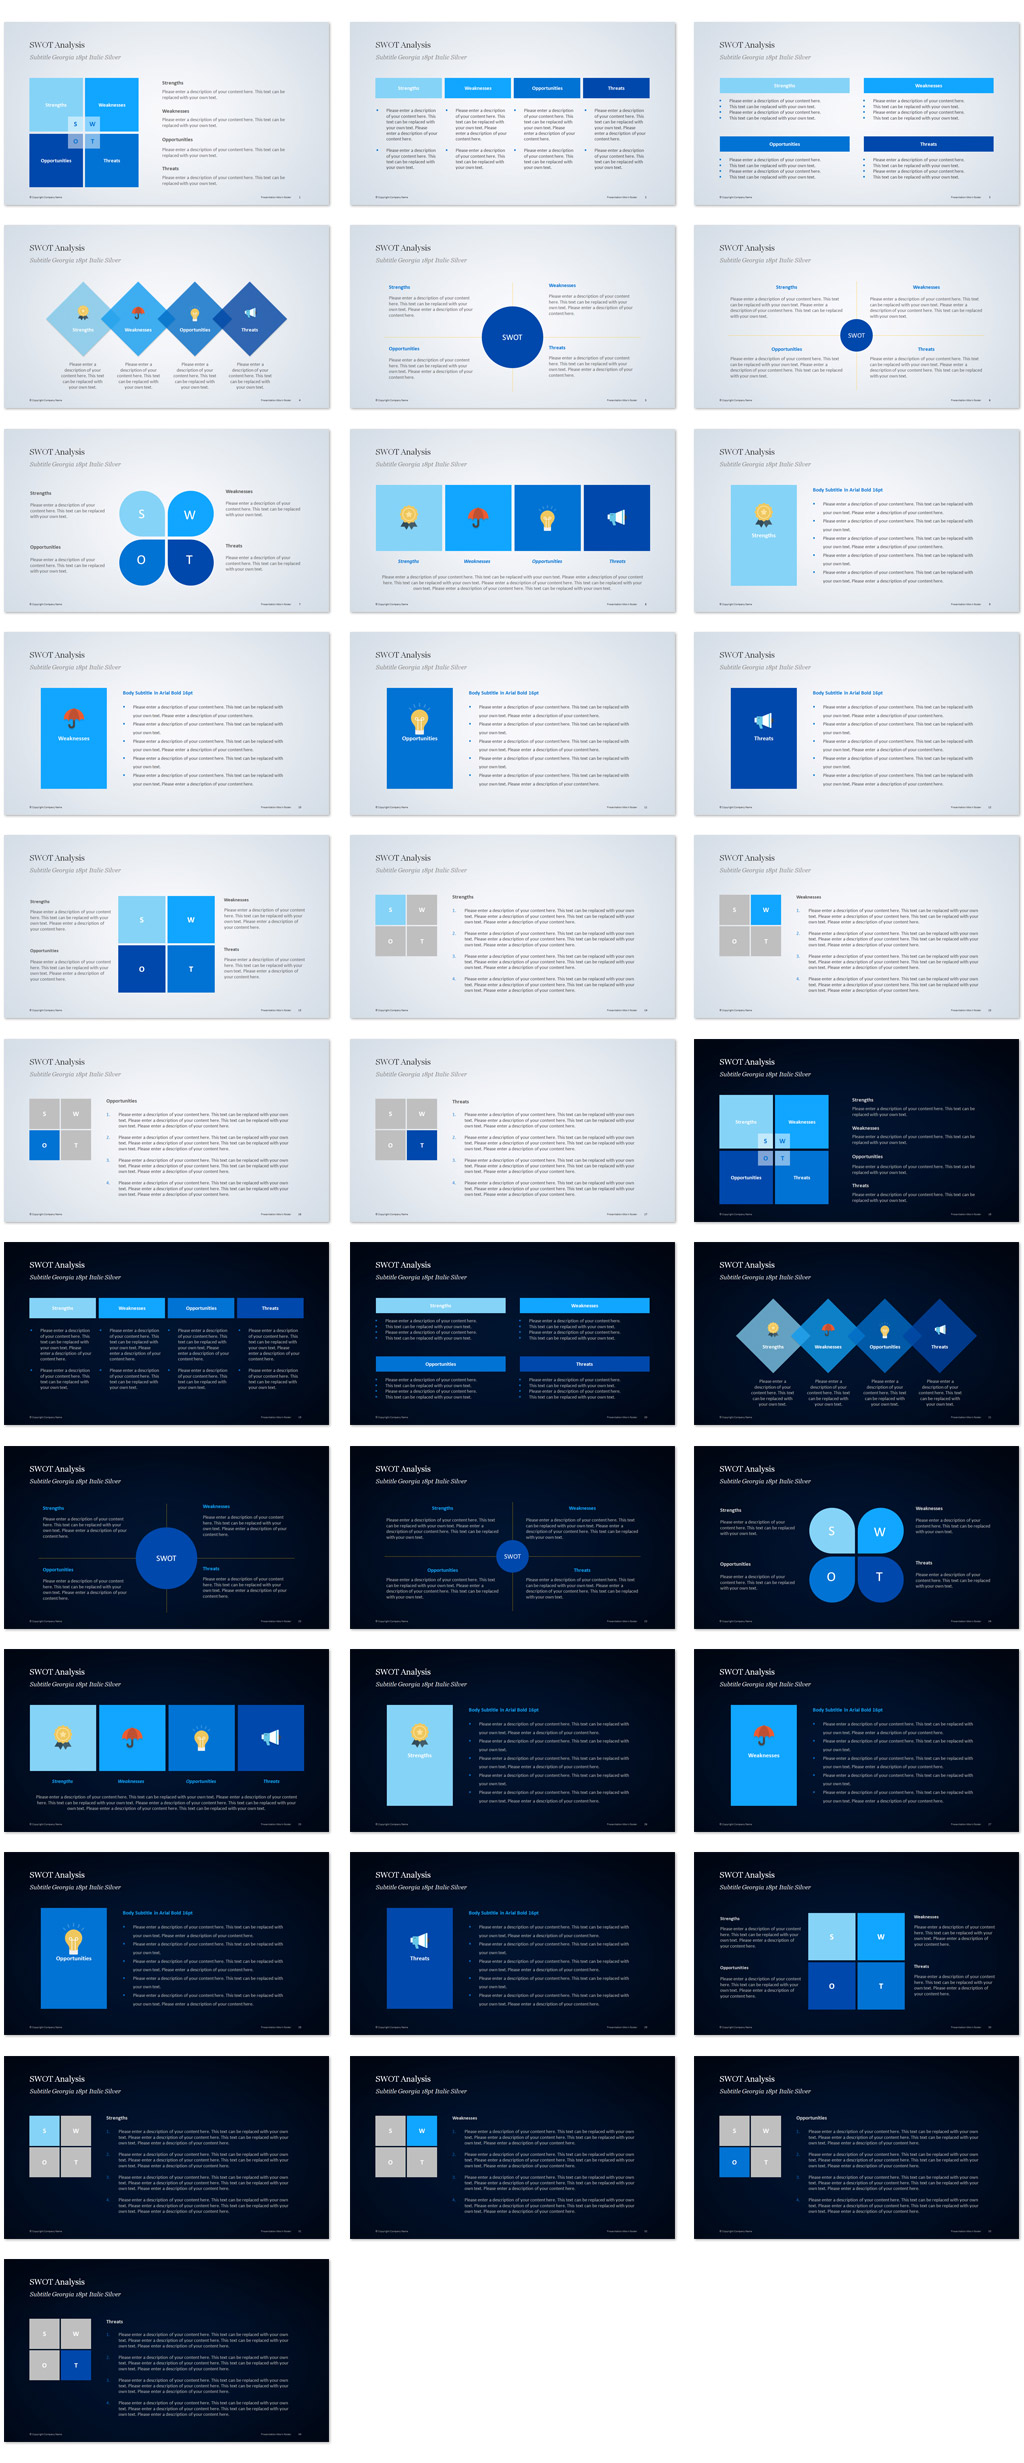 SWOT Analysis PowerPoint Templates